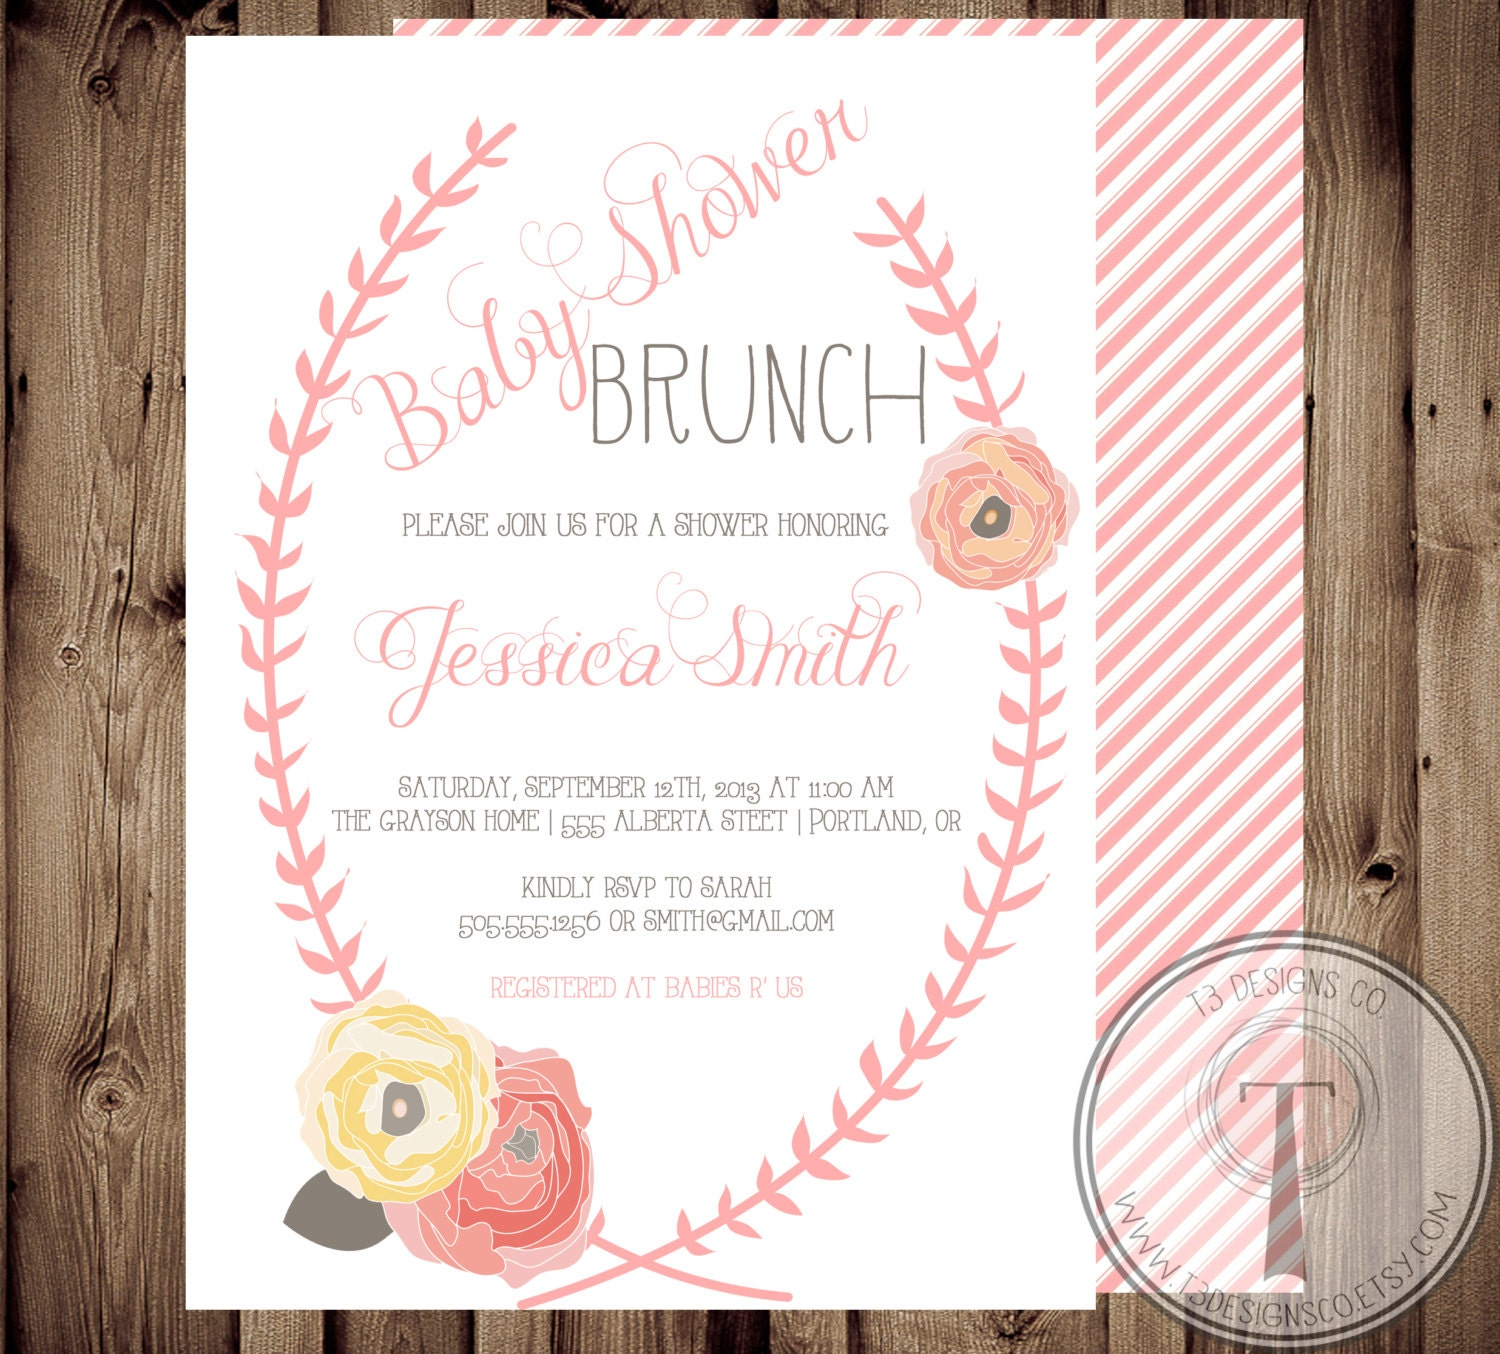 baby naming ceremony invitation wording in tamil - Picture Ideas ...